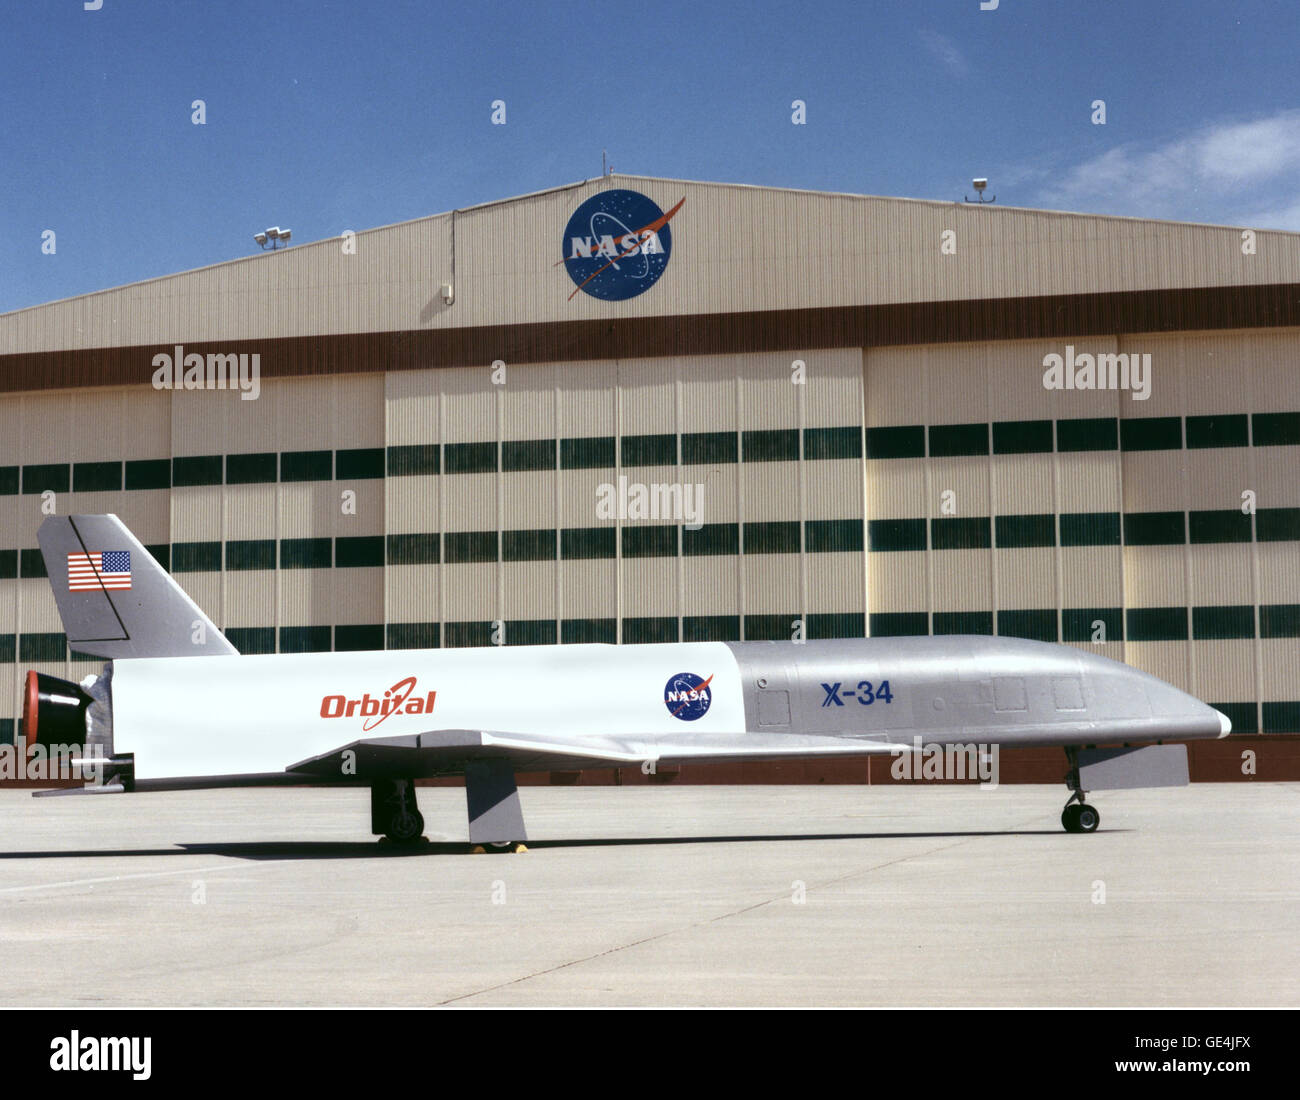 (April 16, 1999) This is the X-34 Technology Testbed Demonstrator being delivered to NASA Dryden Flight Research - Stock Image